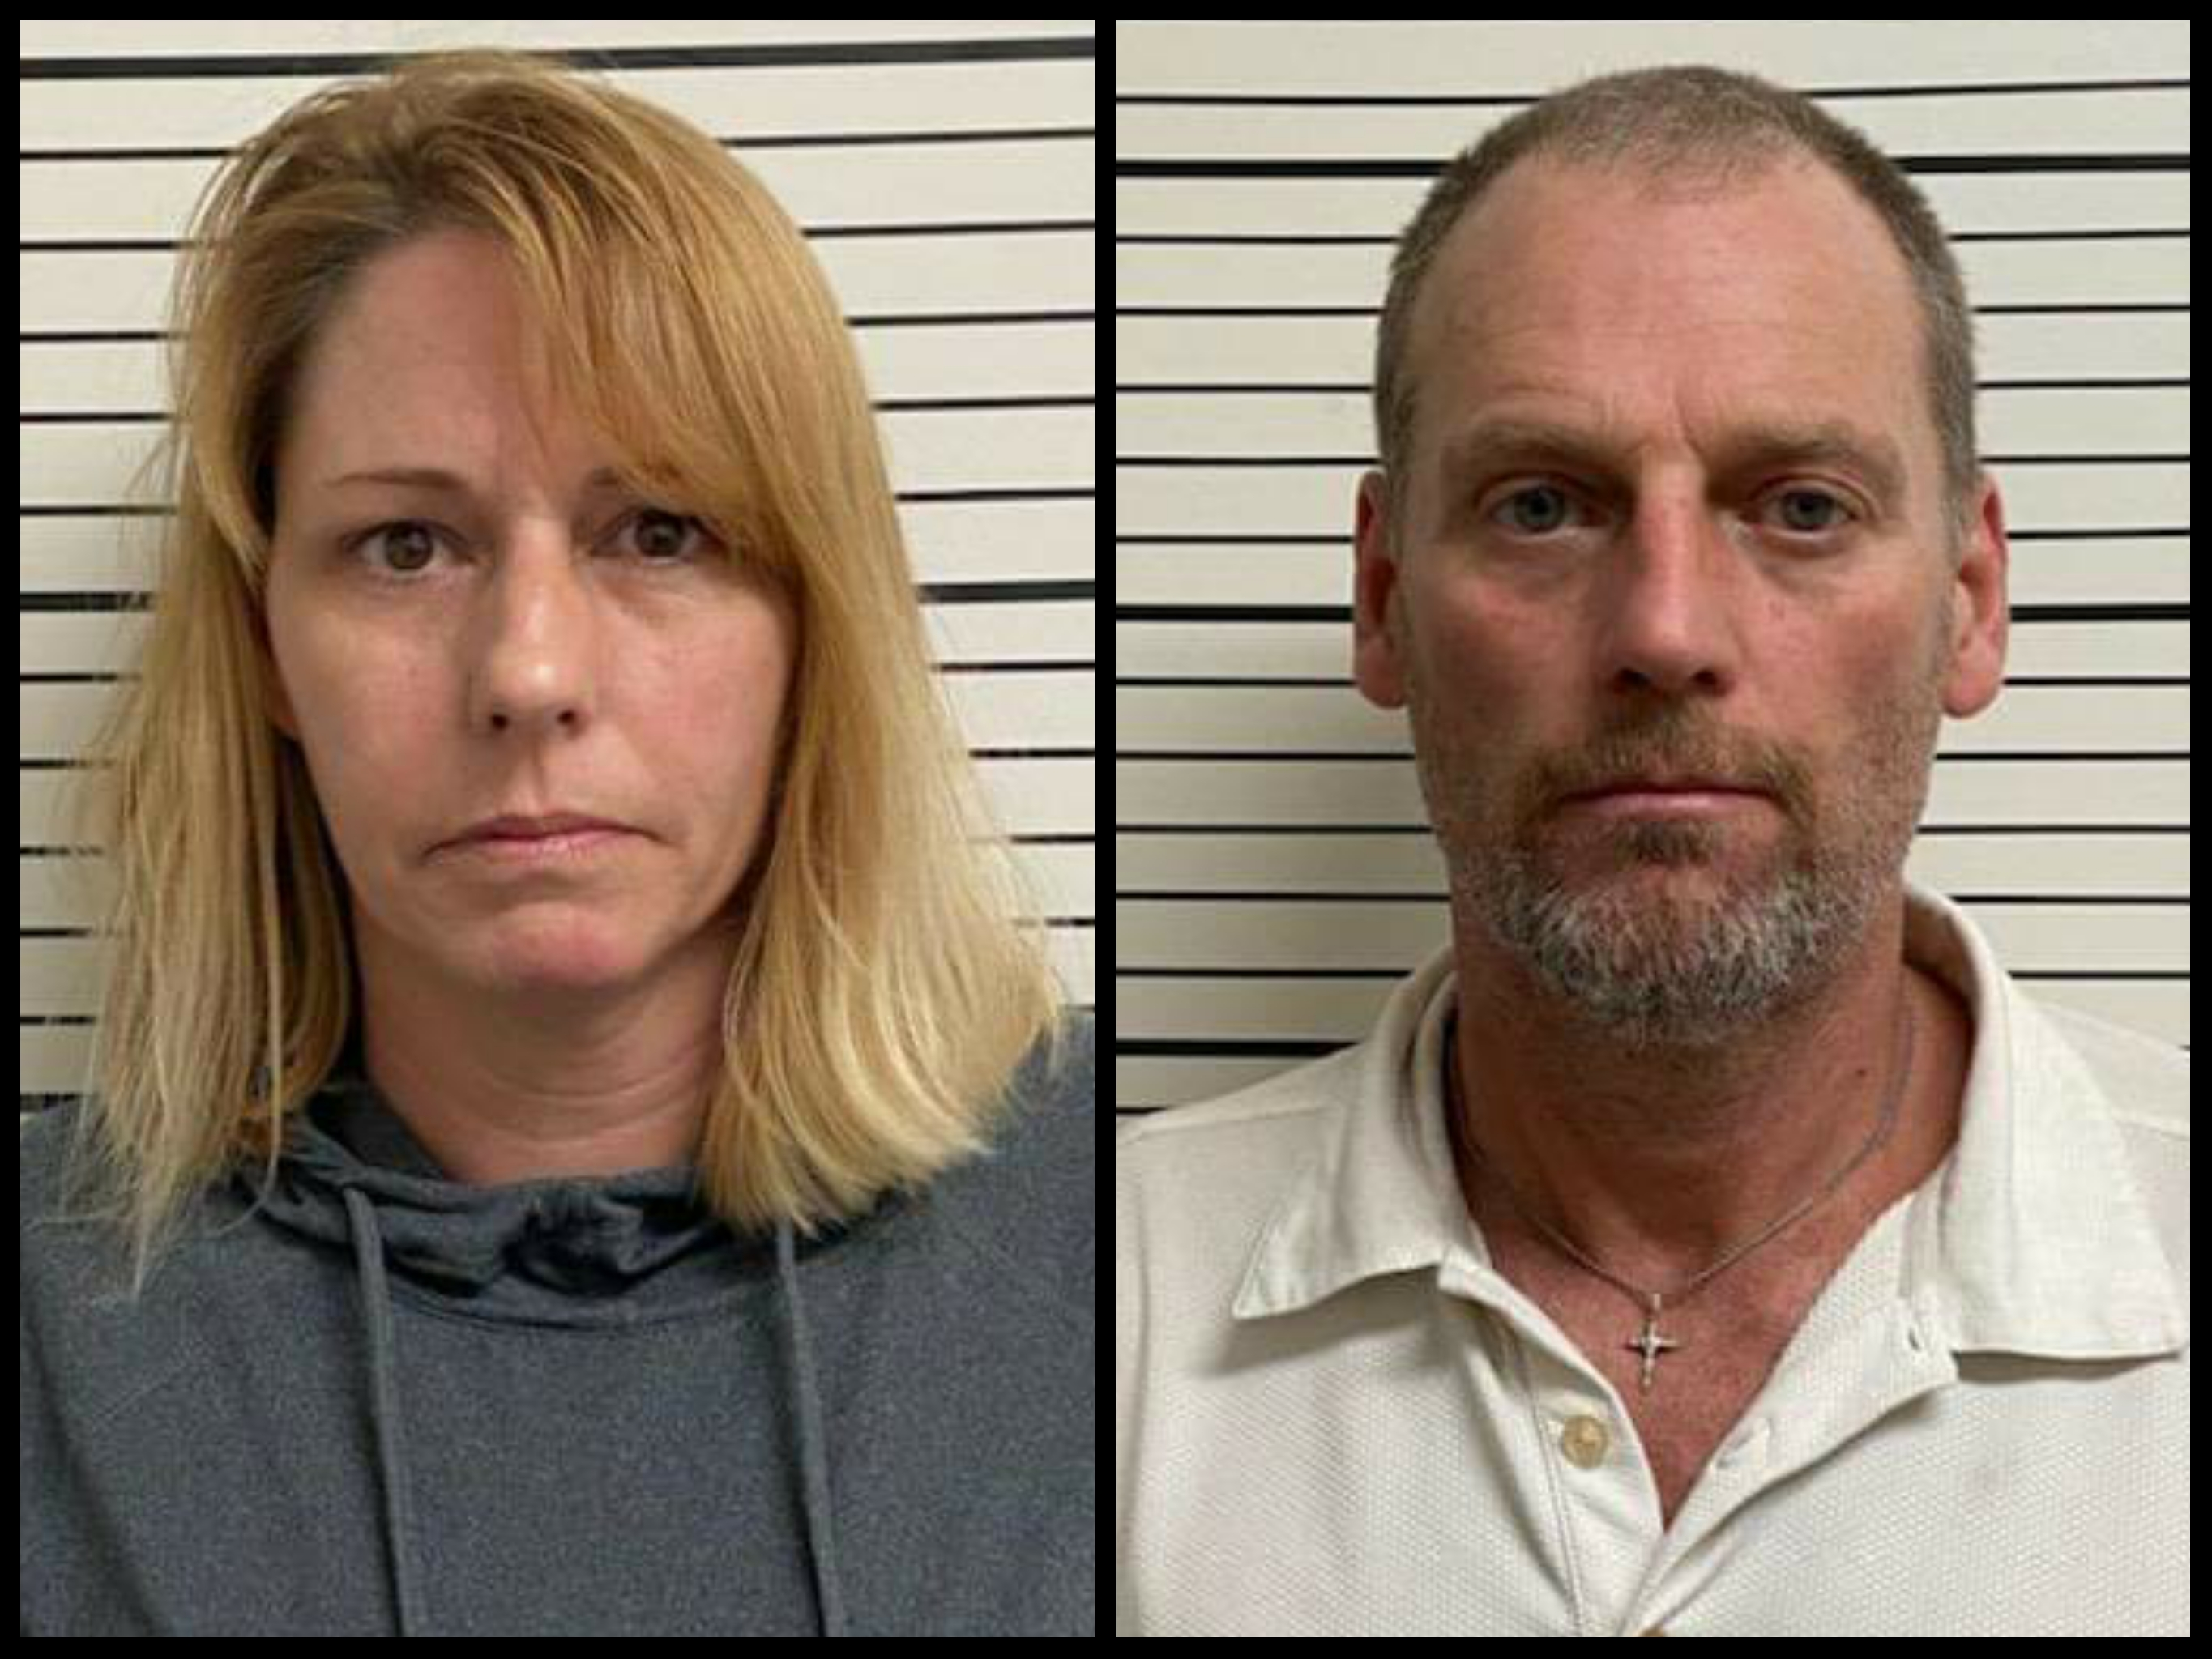 Vinton County OH- Two Arrested for Aggravated Burglary and